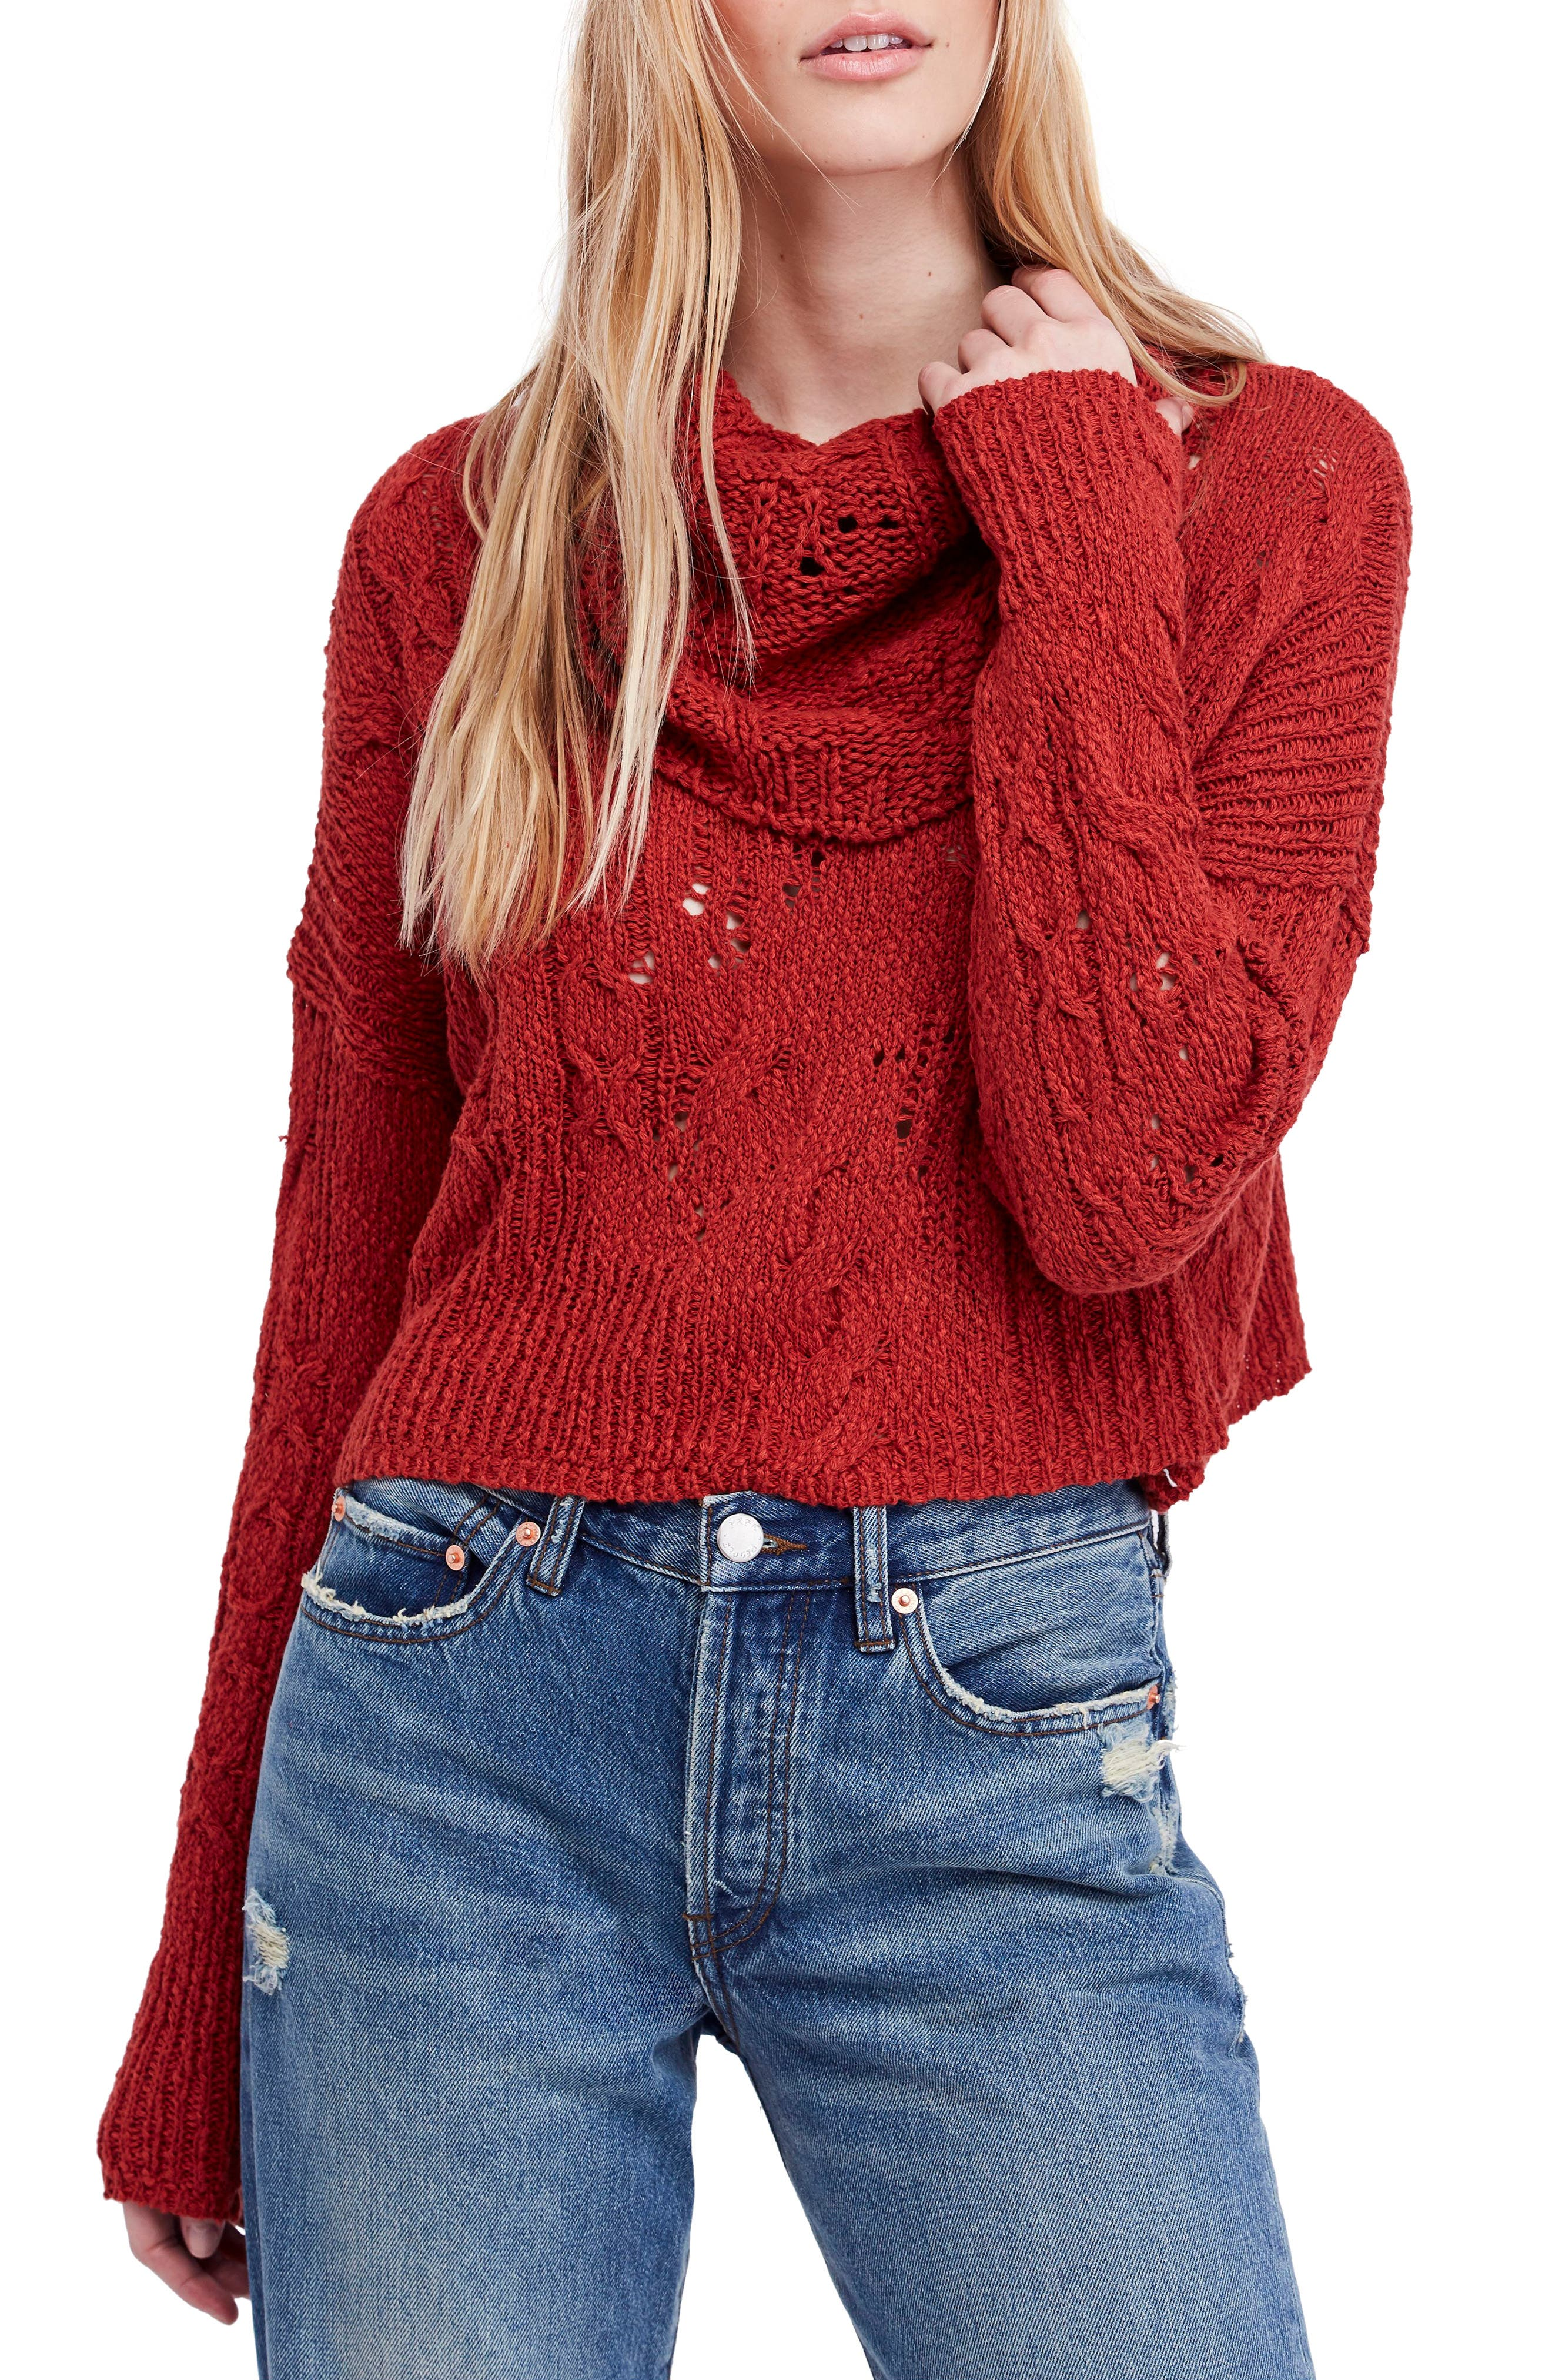 Shades Of Dawn Crop Sweater, Red